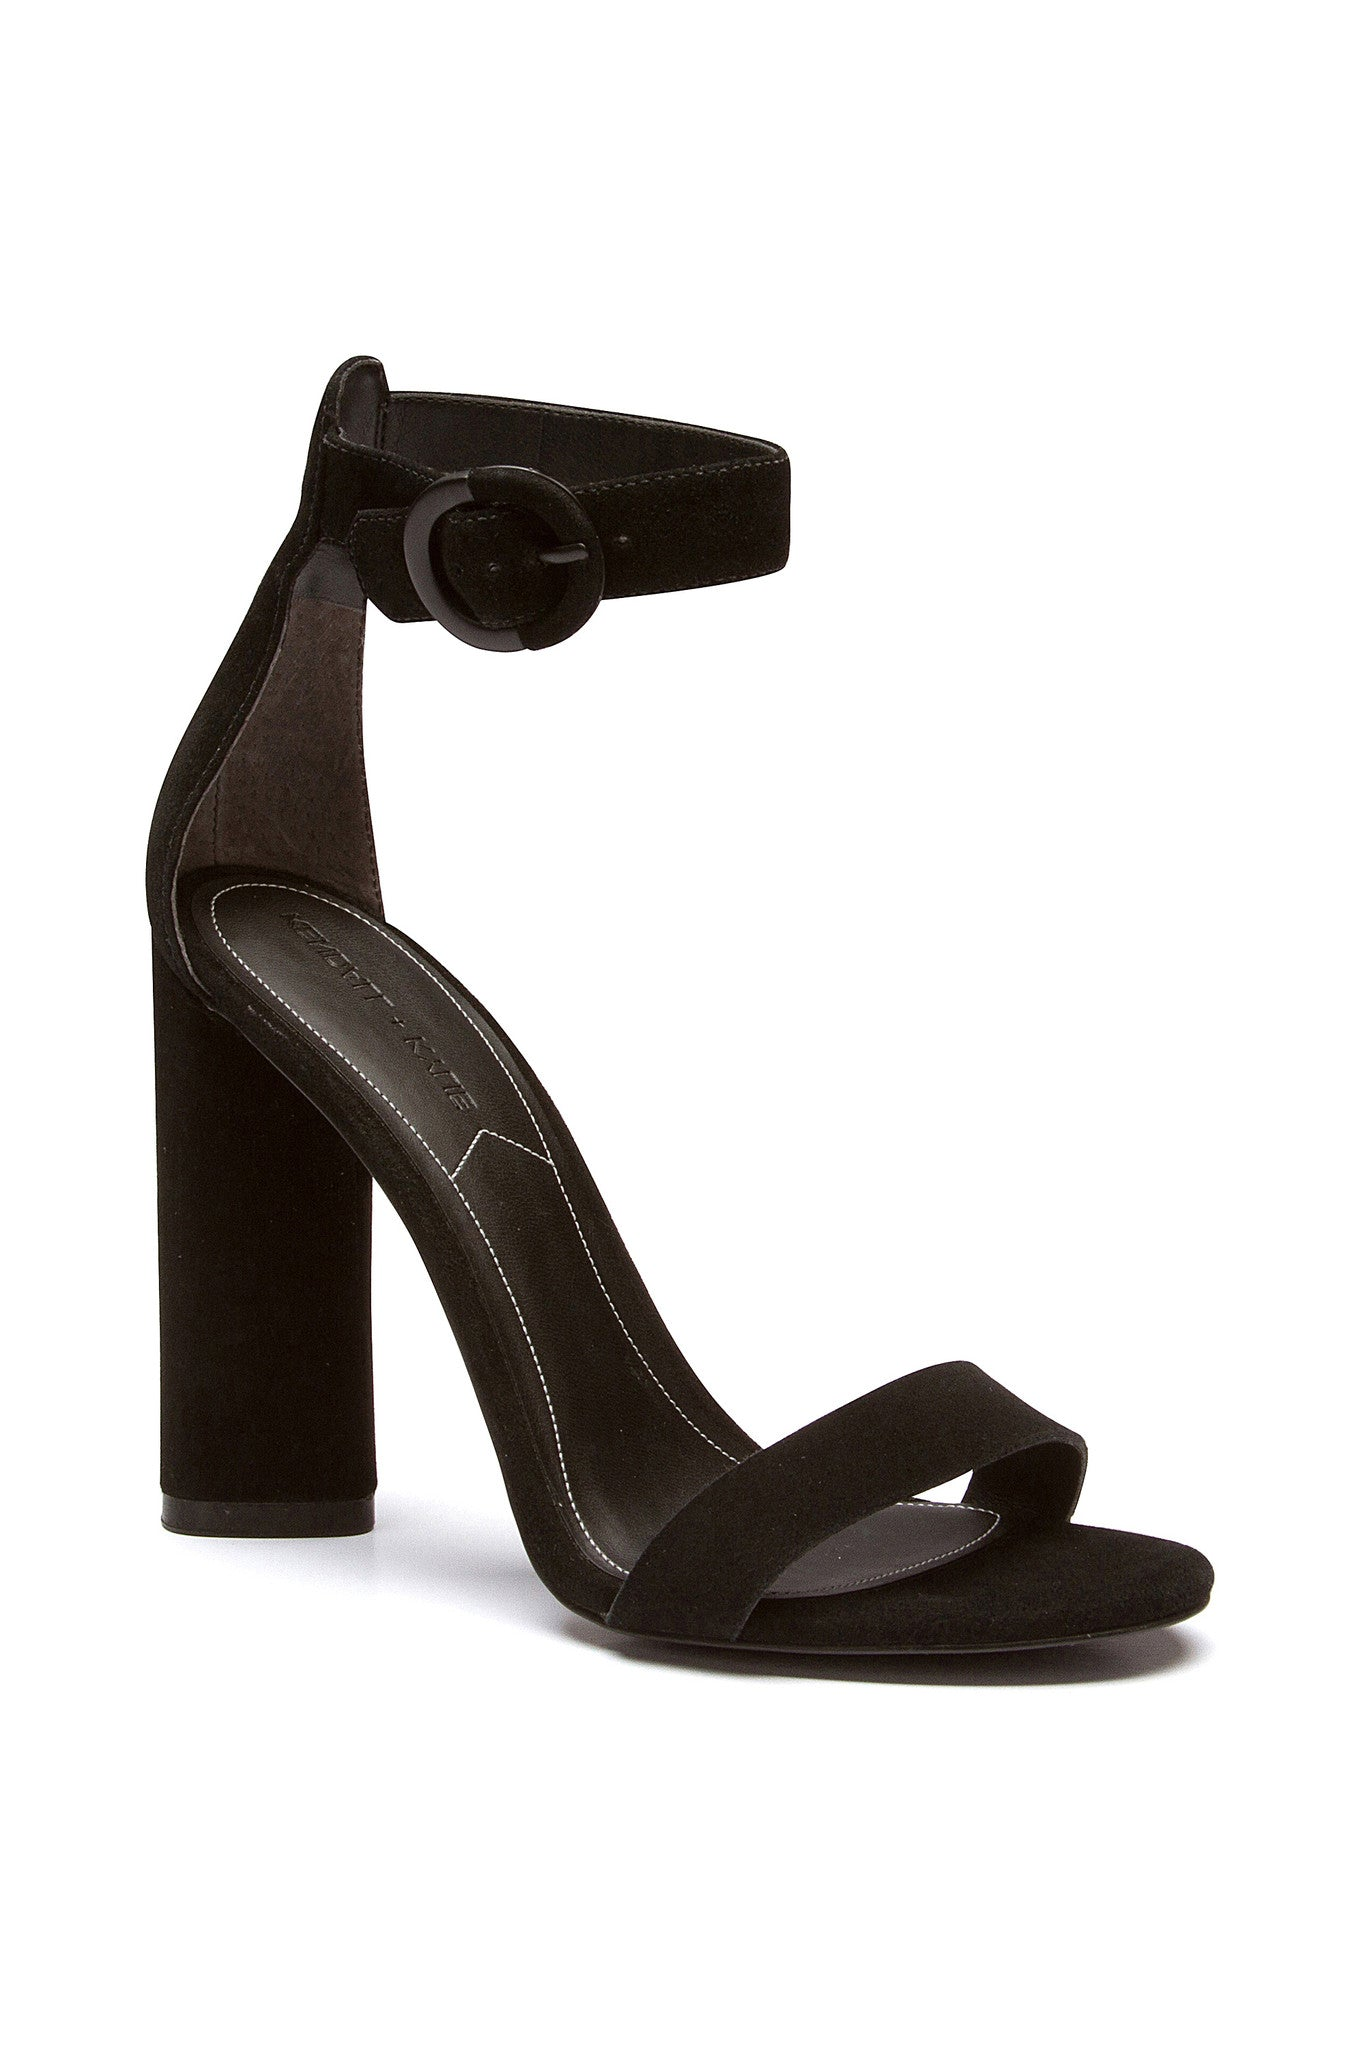 GISELLE BLACK SUEDE SANDAL SHOES by KENDALL + KYLIE